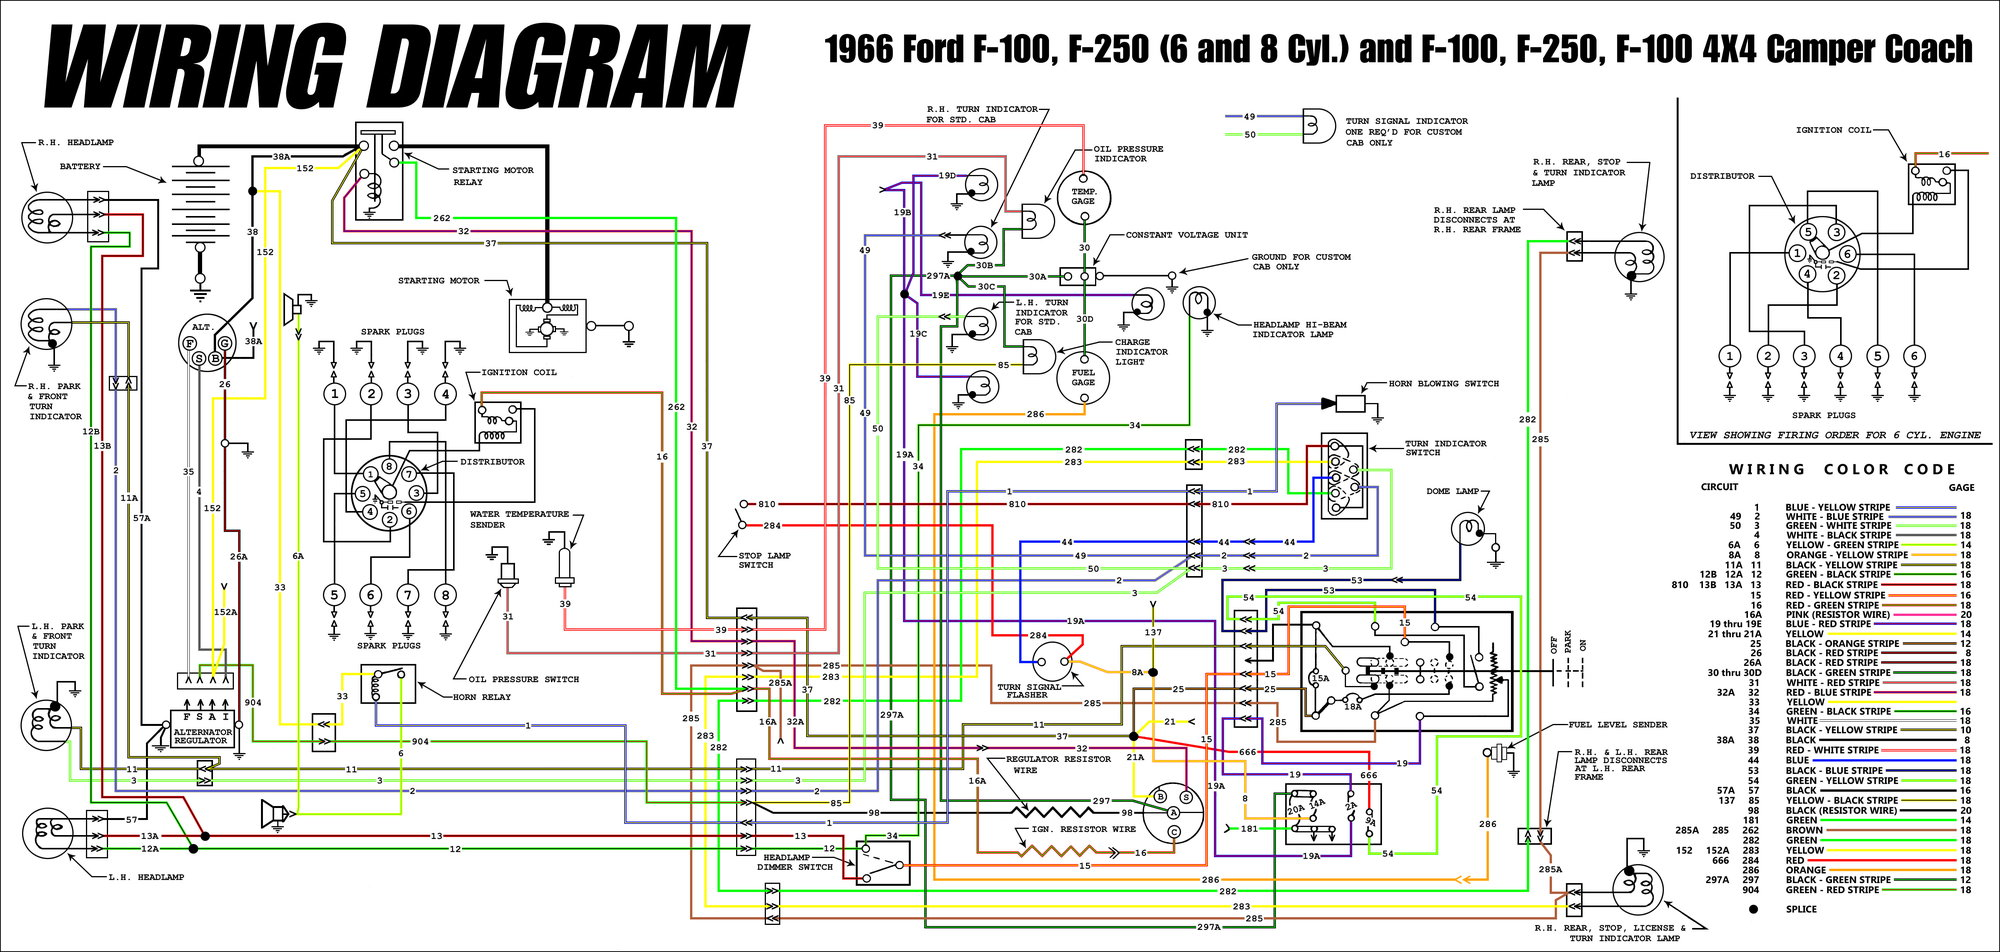 Ignition Coil Wiring Diagram Ford from cimg5.ibsrv.net